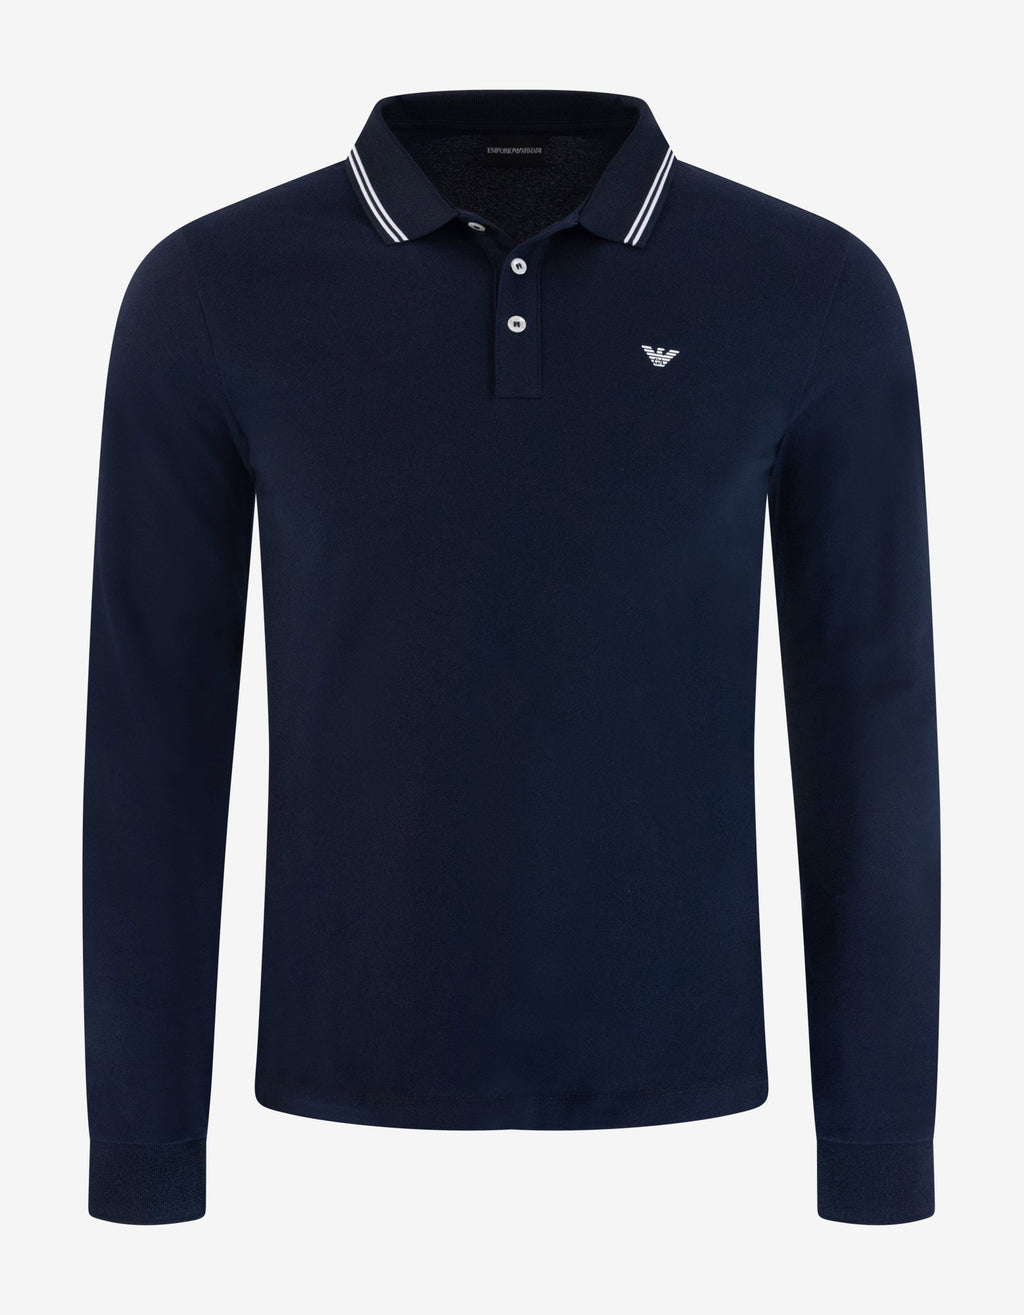 Navy Blue Eagle Logo Long Sleeve Polo T-Shirt